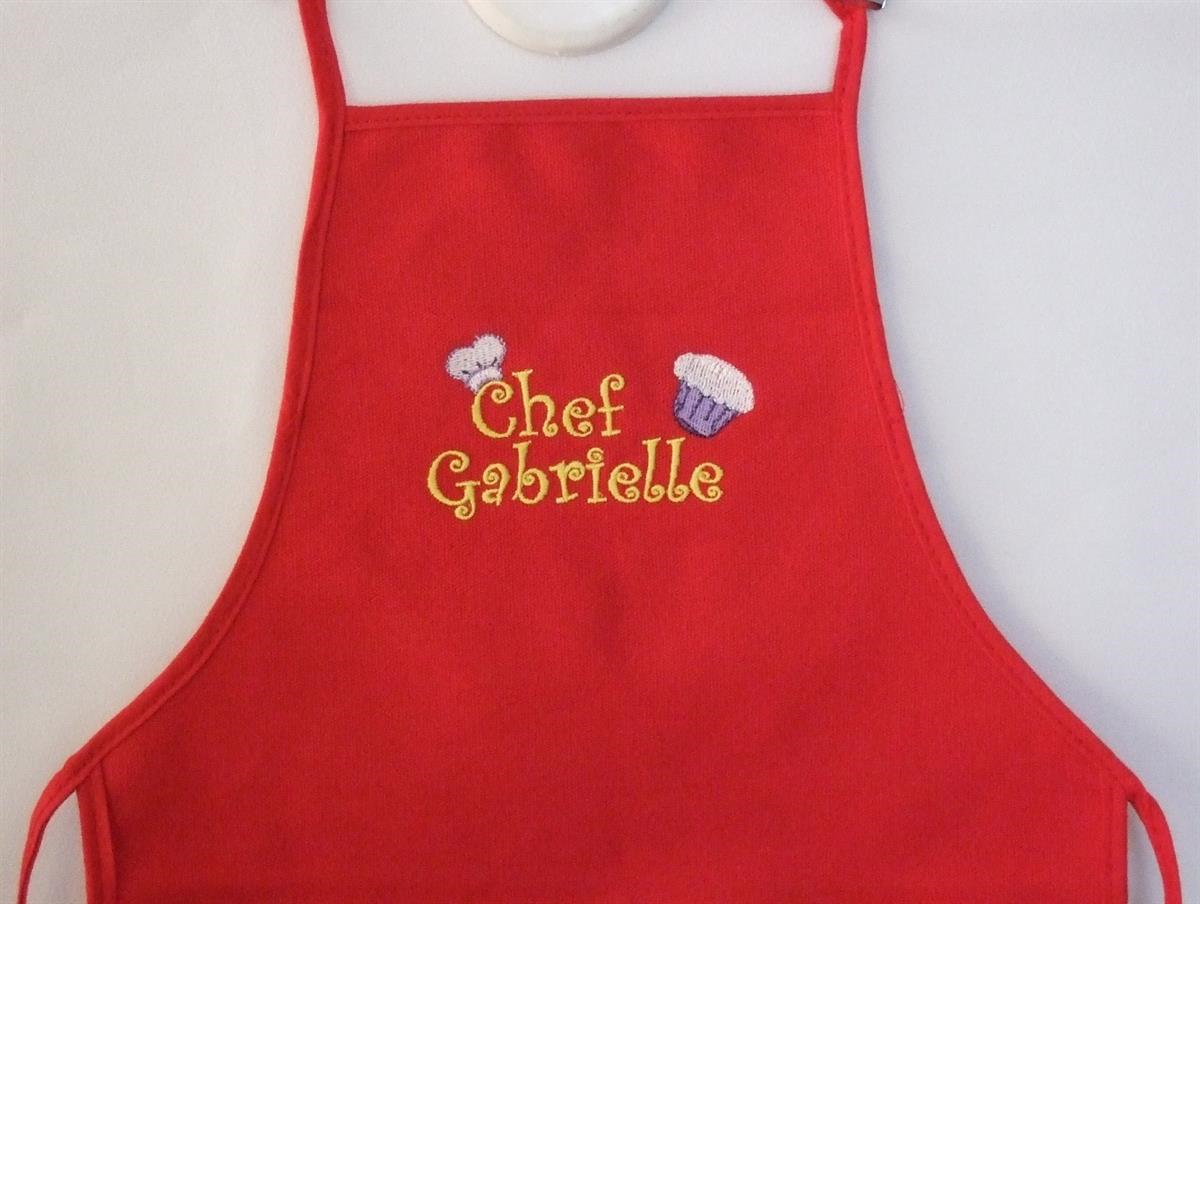 Child's red apron with chef hat and cupcake